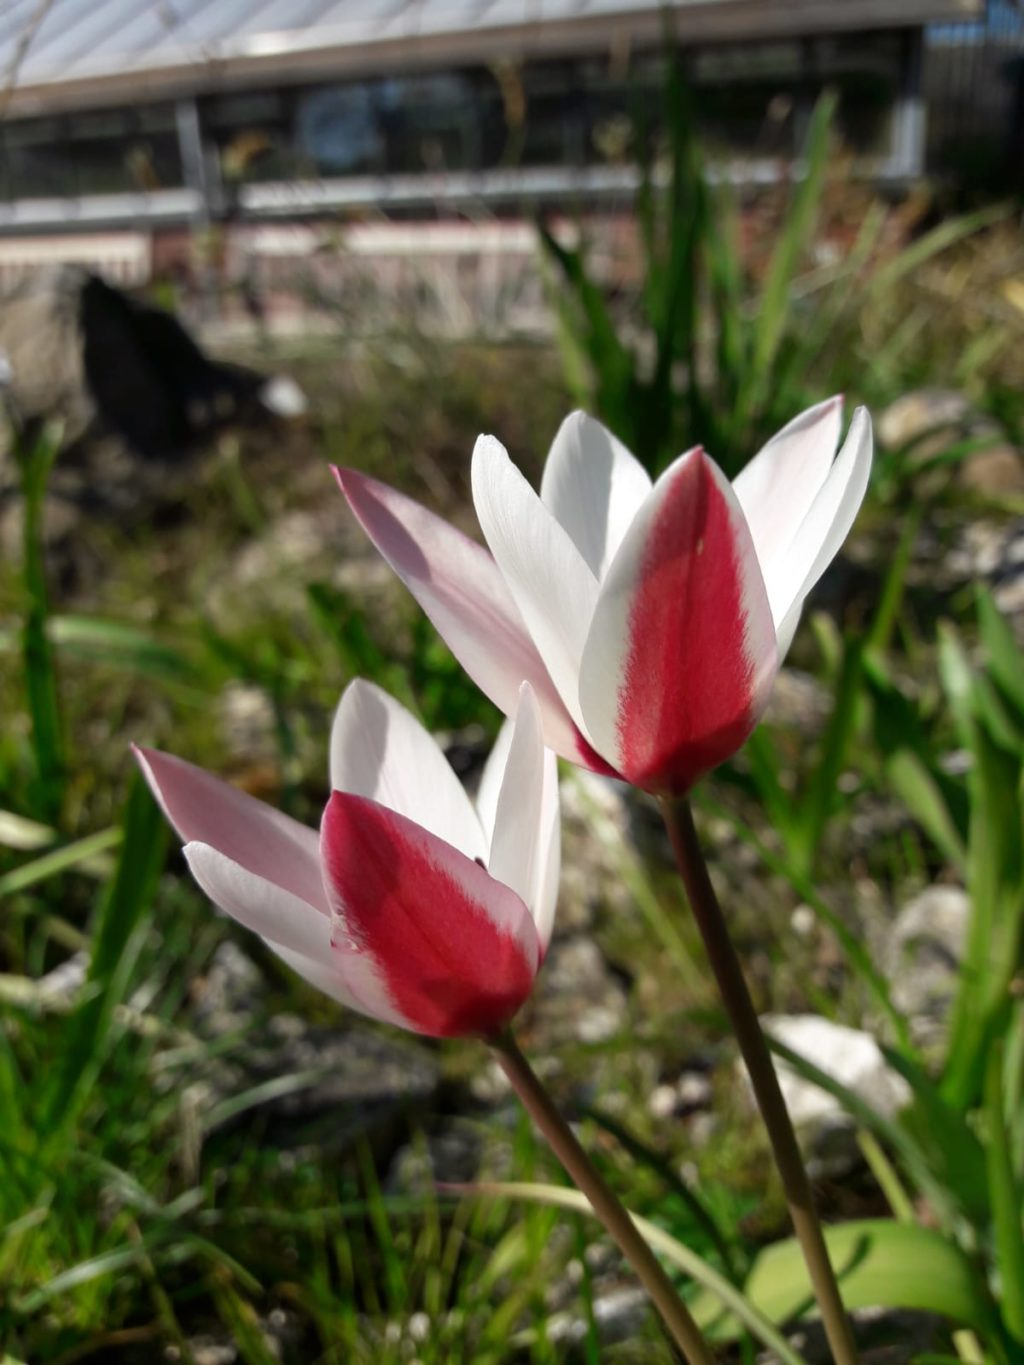 Two tulips in the Hortus